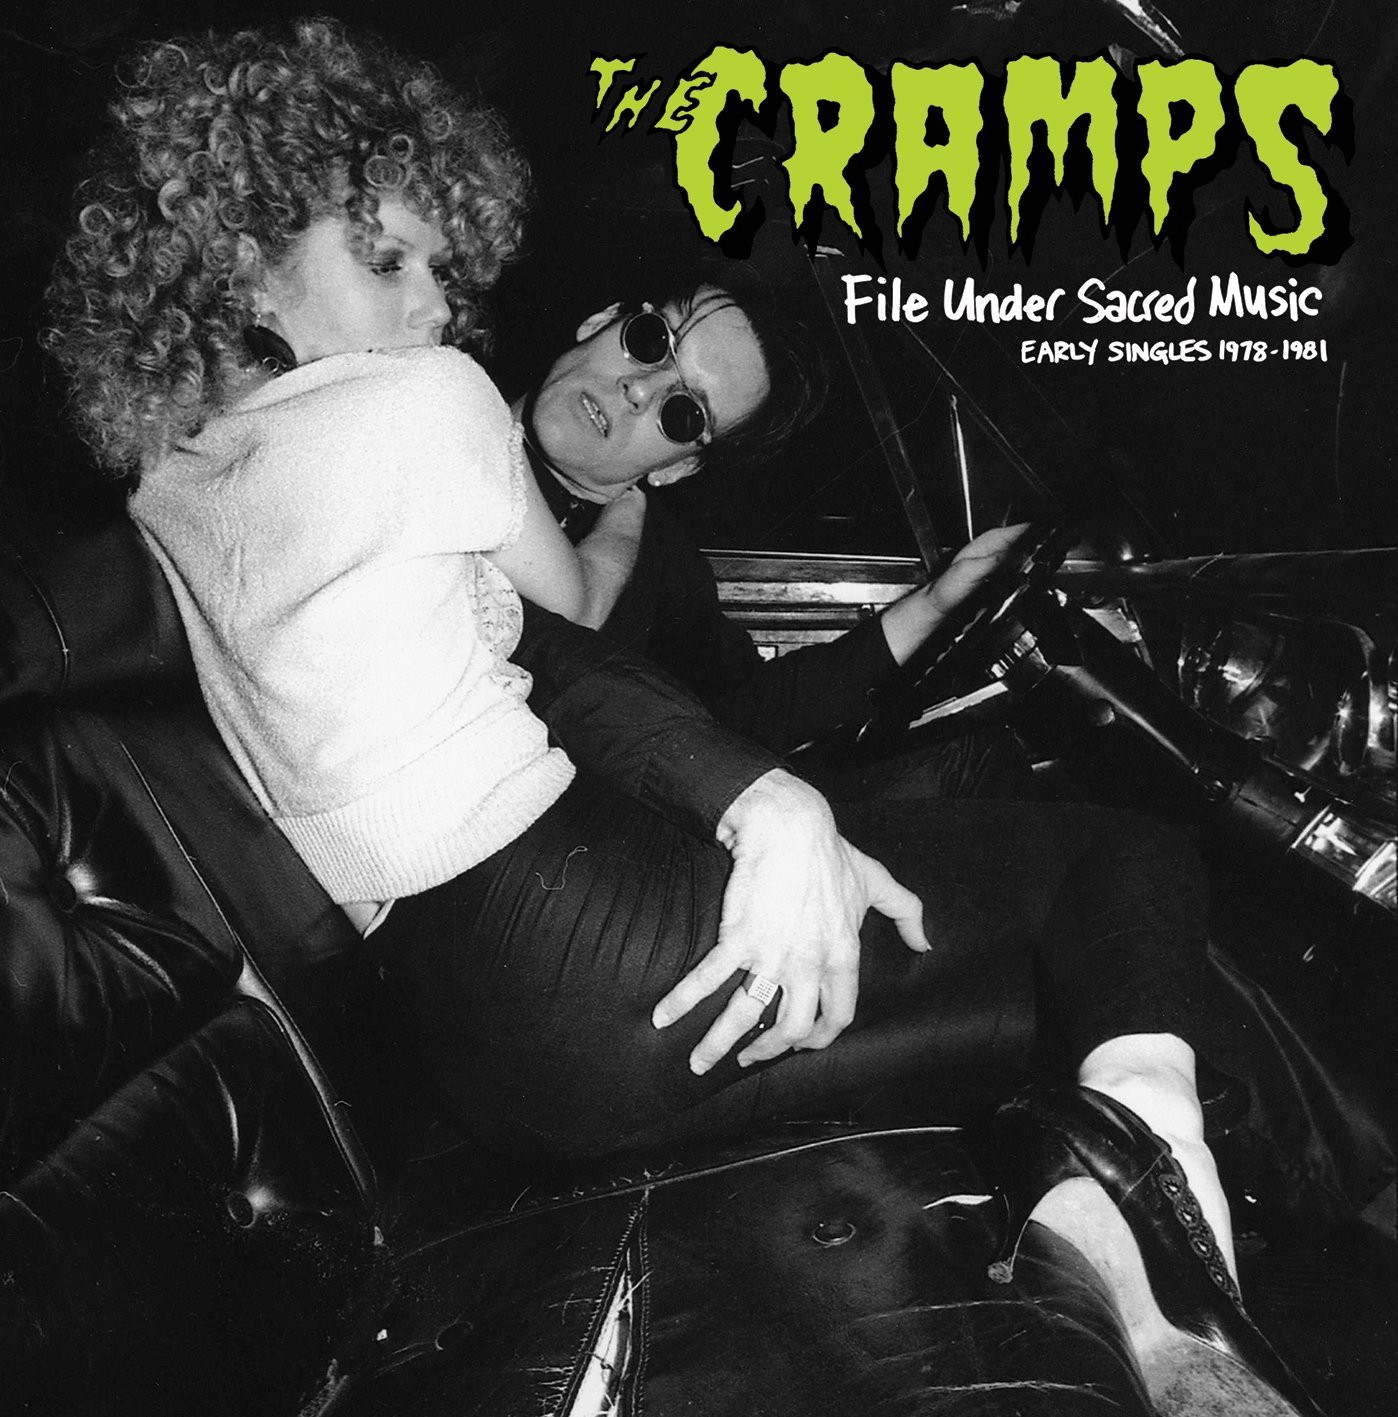 Cramps - File Under Sacred Music [Early Singles 1978-1981] [2001]